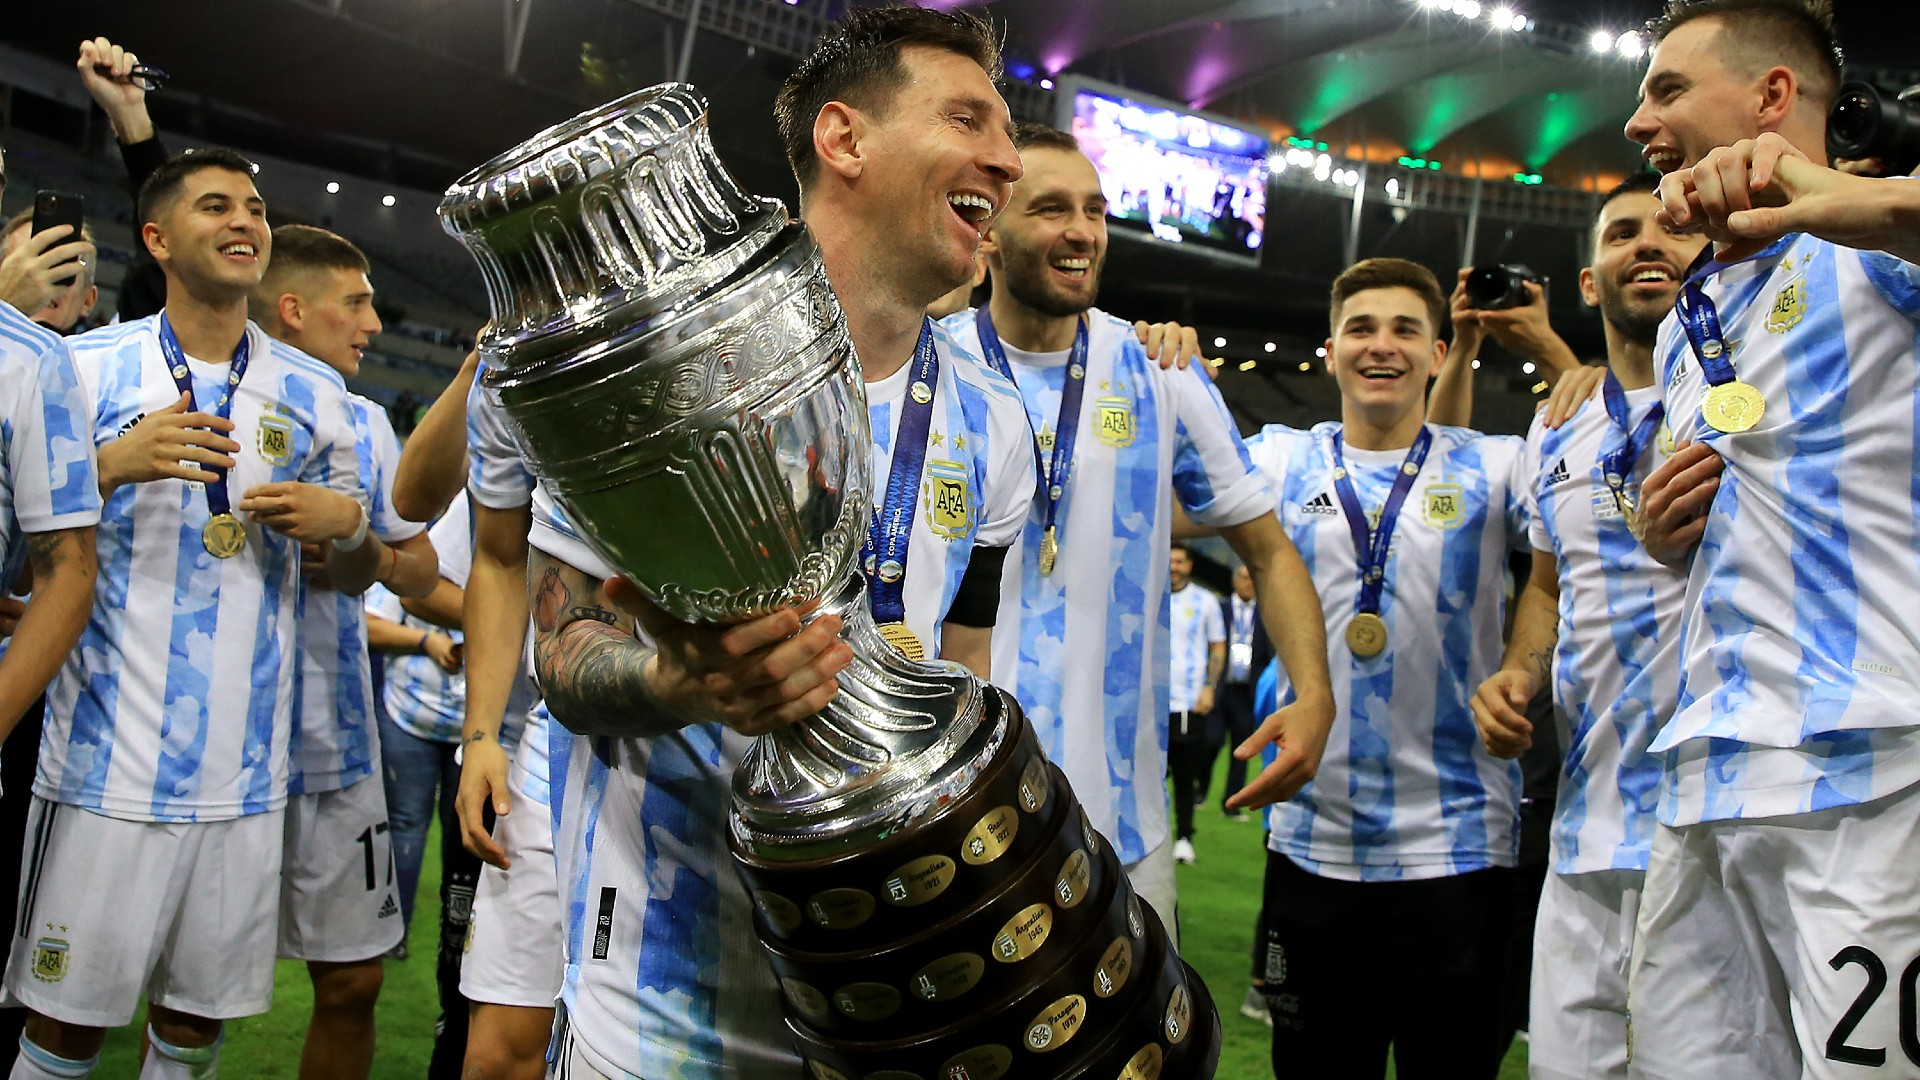 Brazil vs. Argentina result: Lionel Messi wins first title with Argentina, ending nation's 28-year drought